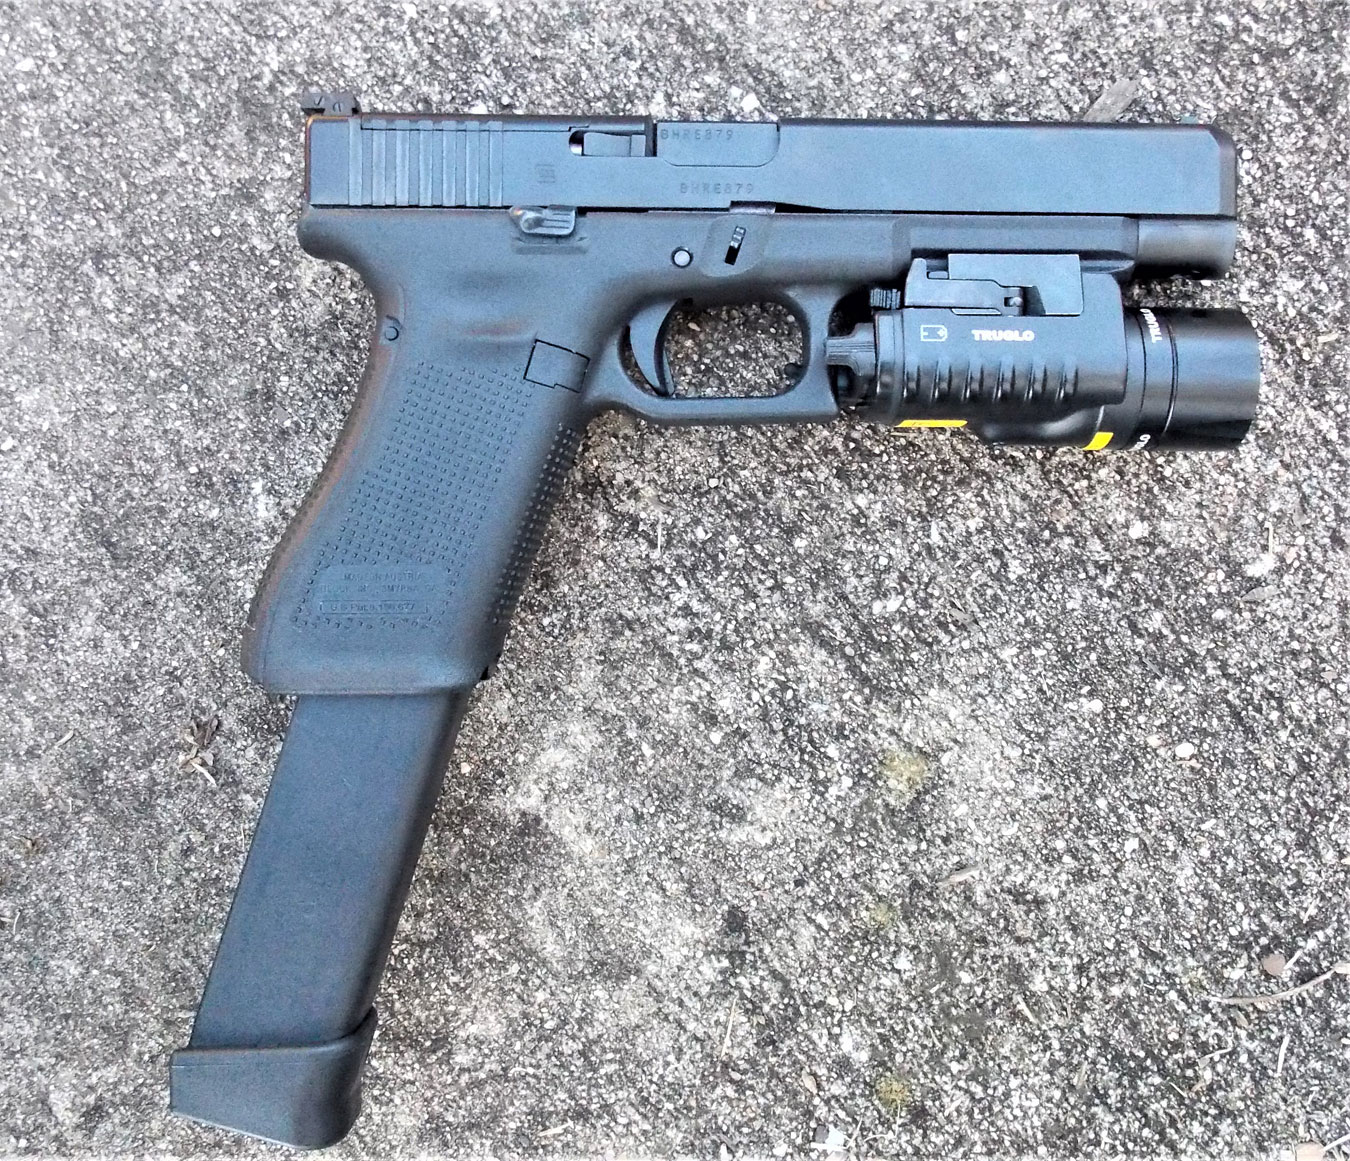 Glock 34 with 33-round magazine and TruGlo combat light